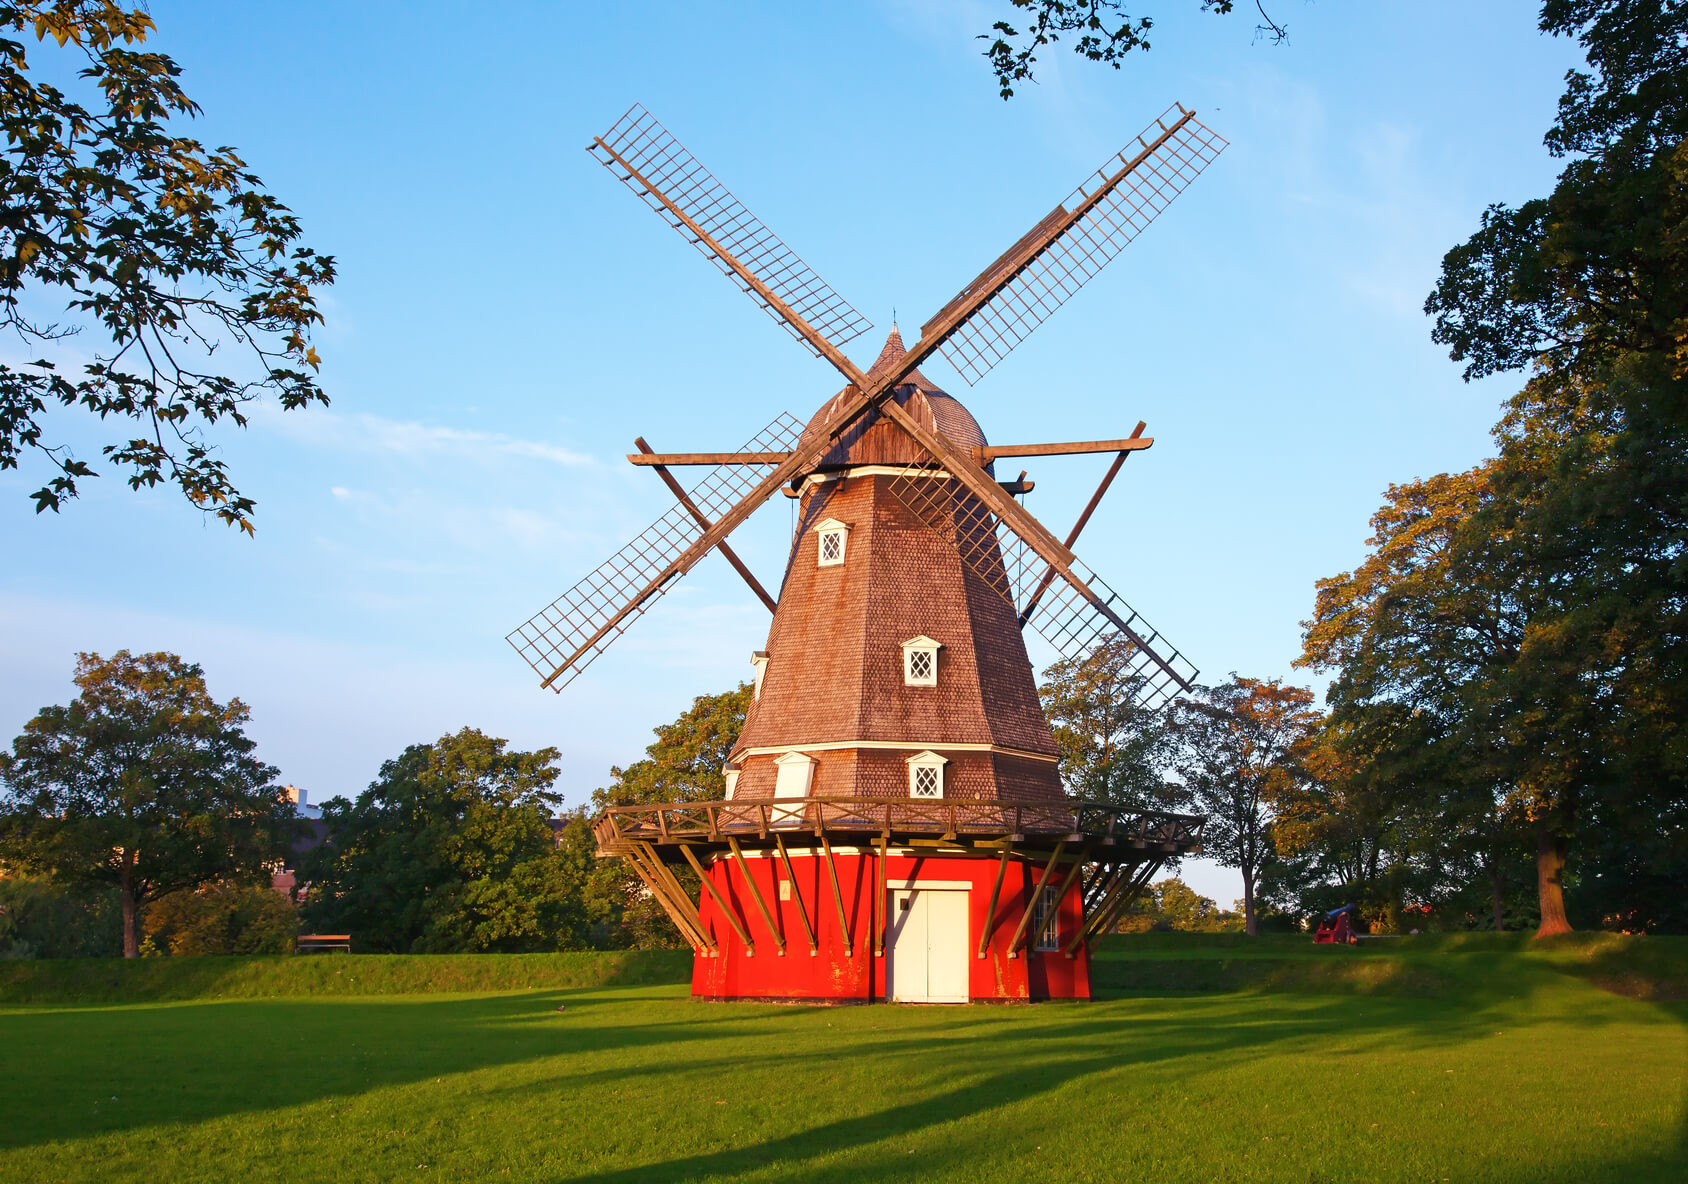 Miami to Copenhagen, Denmark for only $332 roundtrip